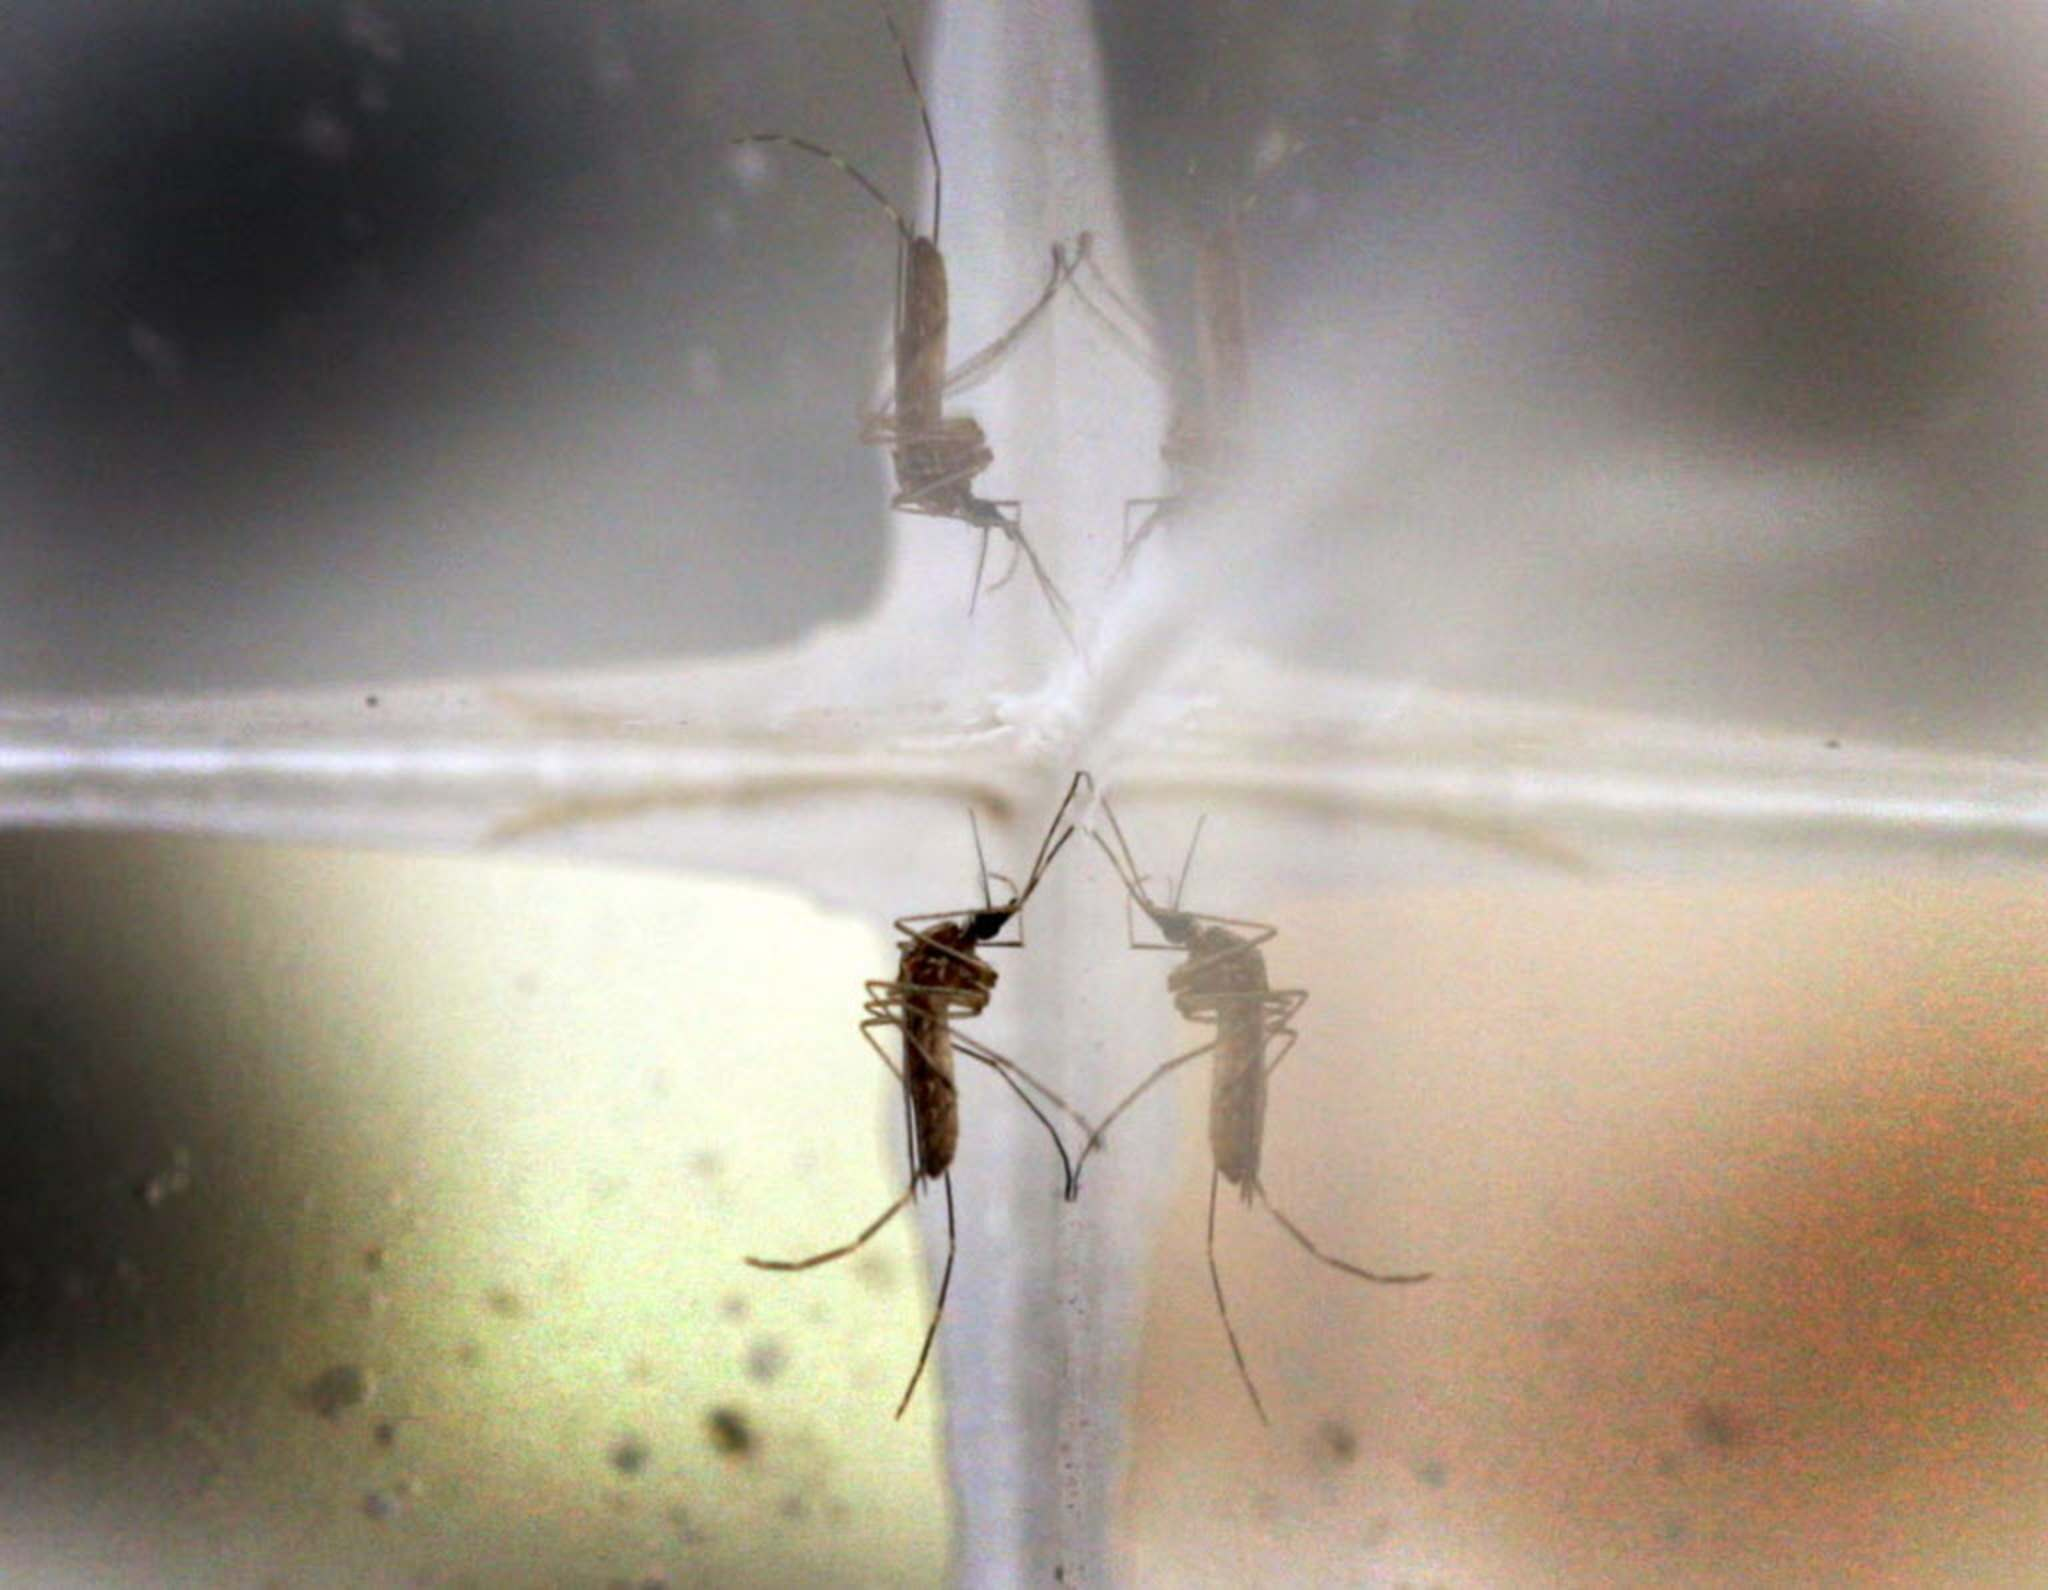 Mosquito infected with West Nile Virus discovered in Garden Grove